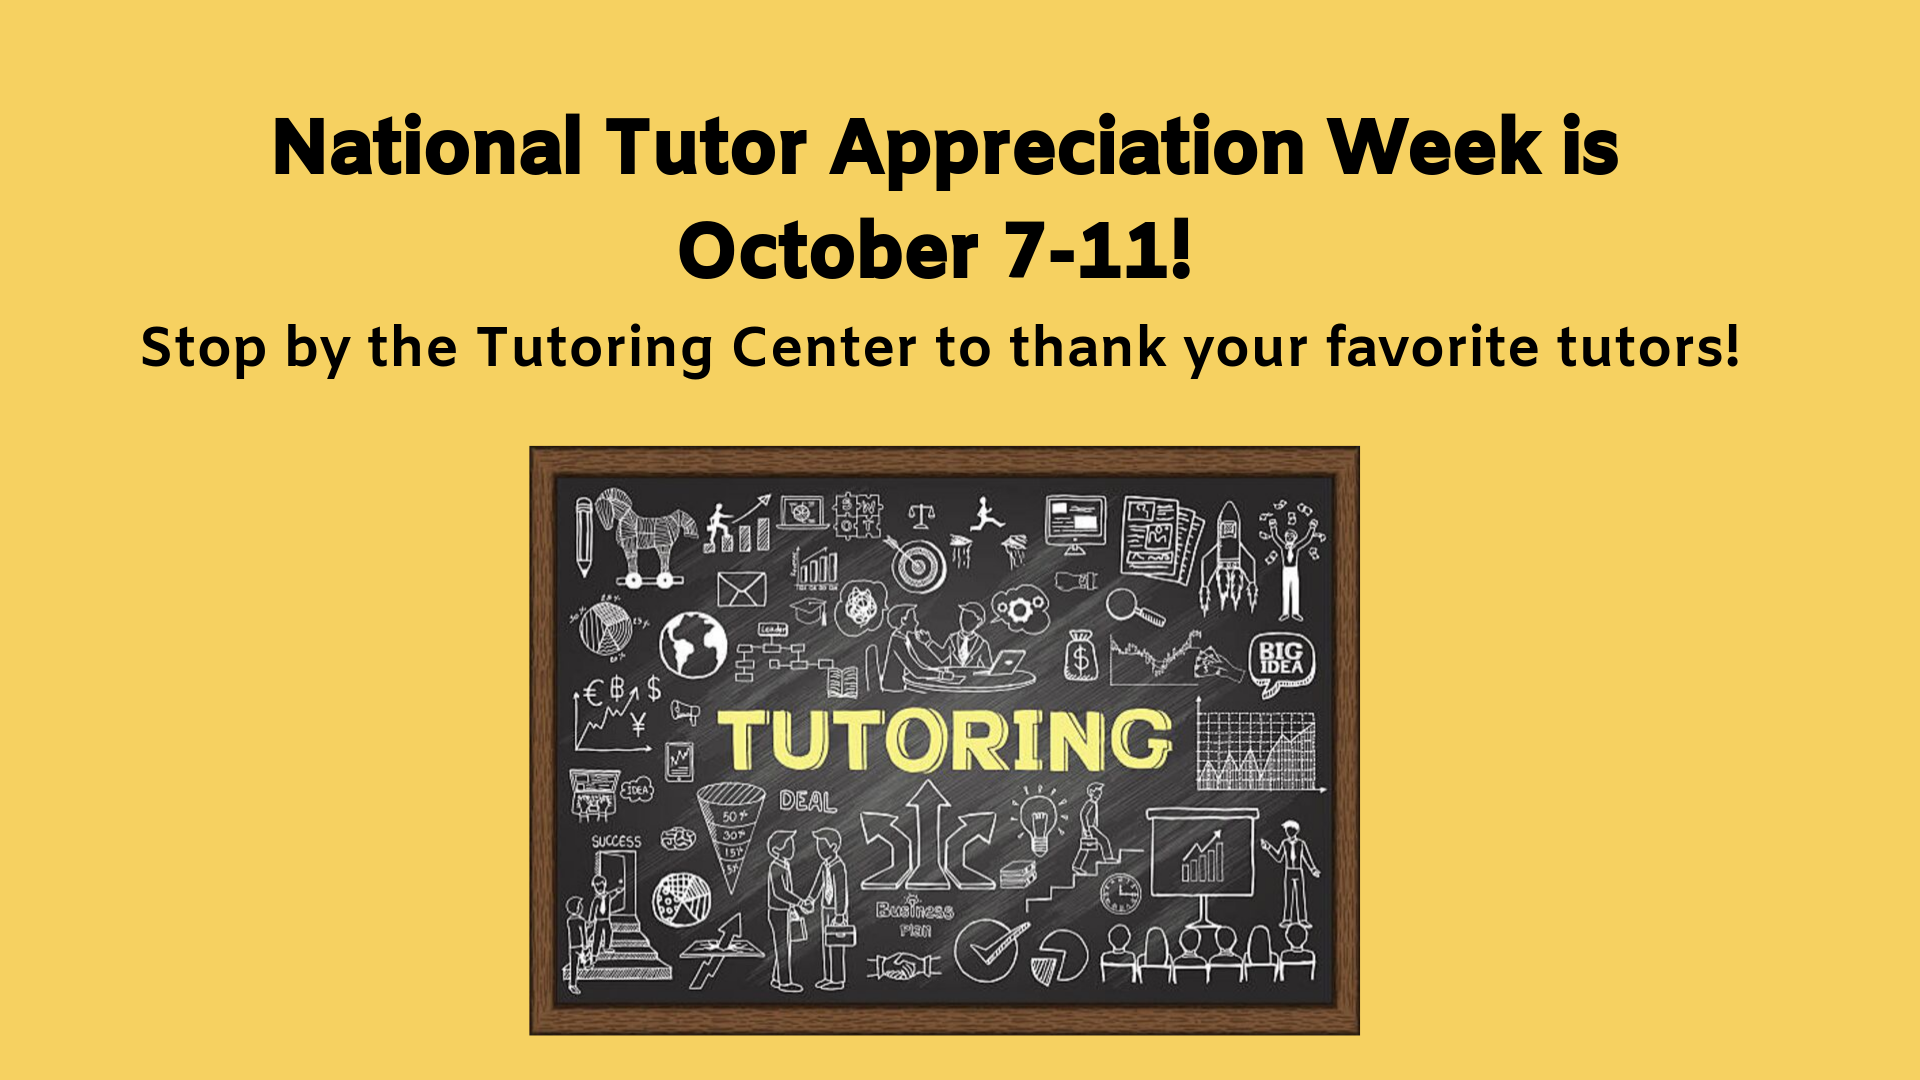 National Tutor Appreciation Week is October 7-11! Stop by the Tutoring Center to thank your favorite tutors!